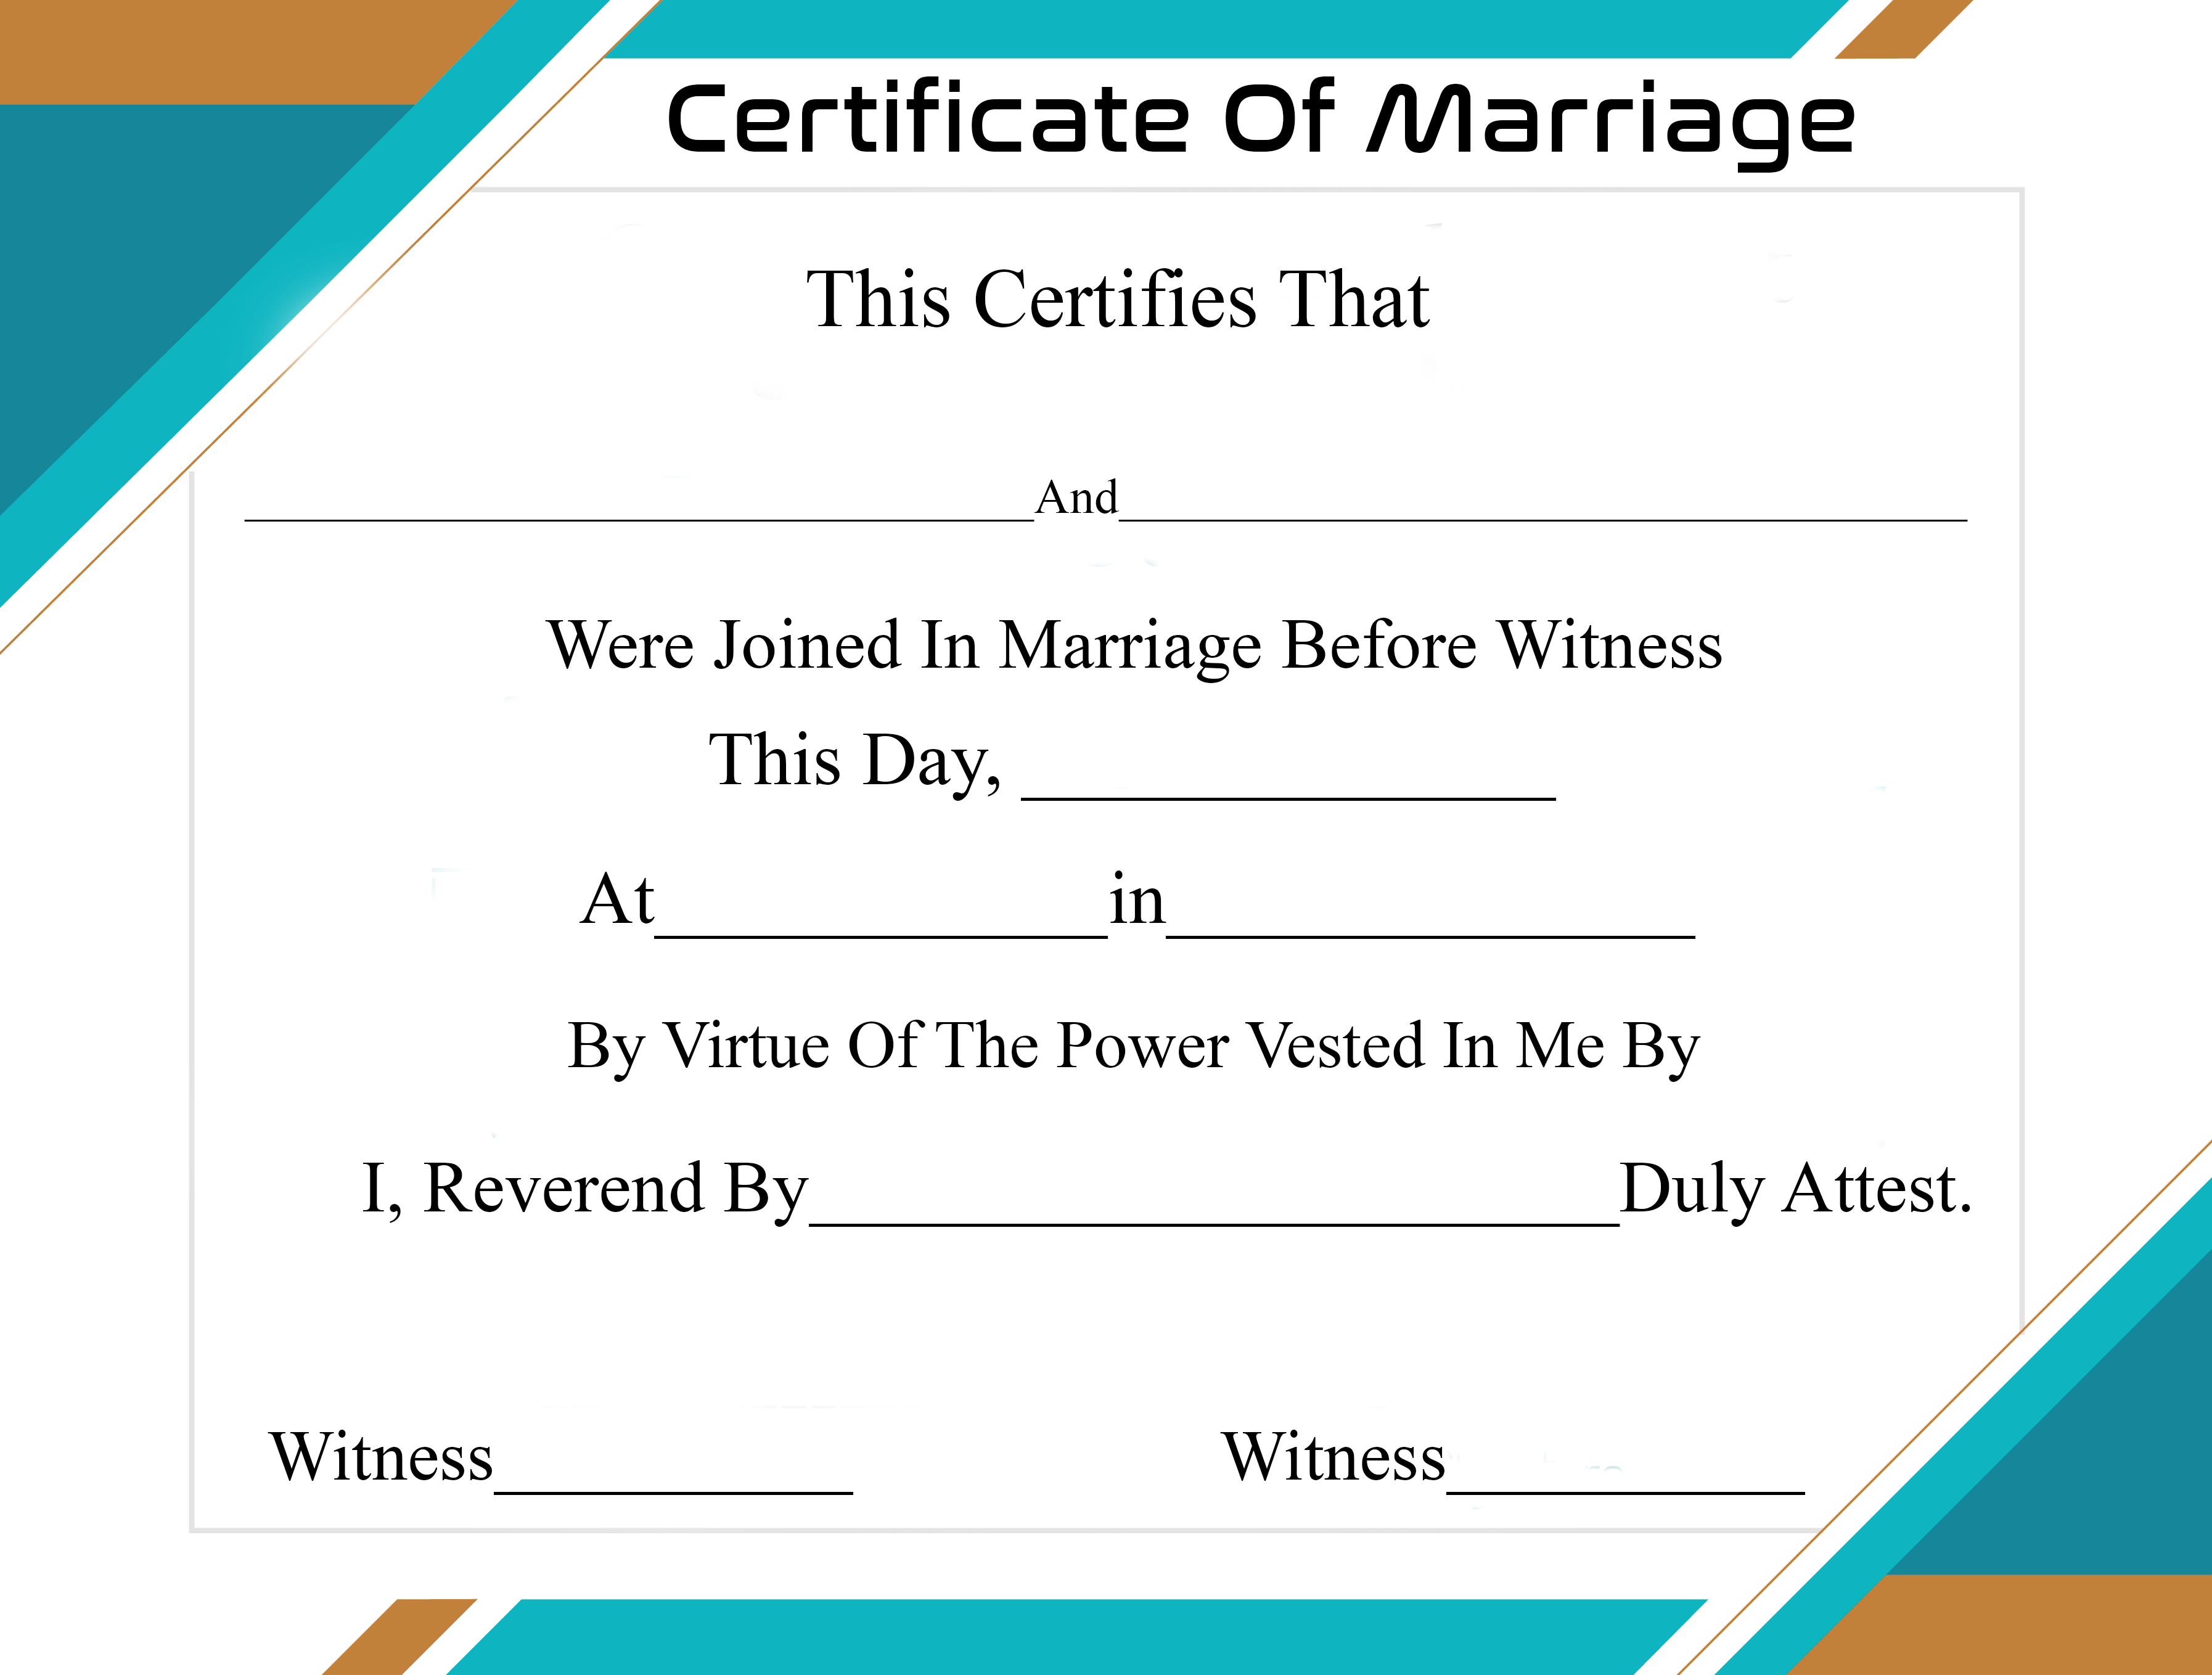 Certificate of Marriage Templates